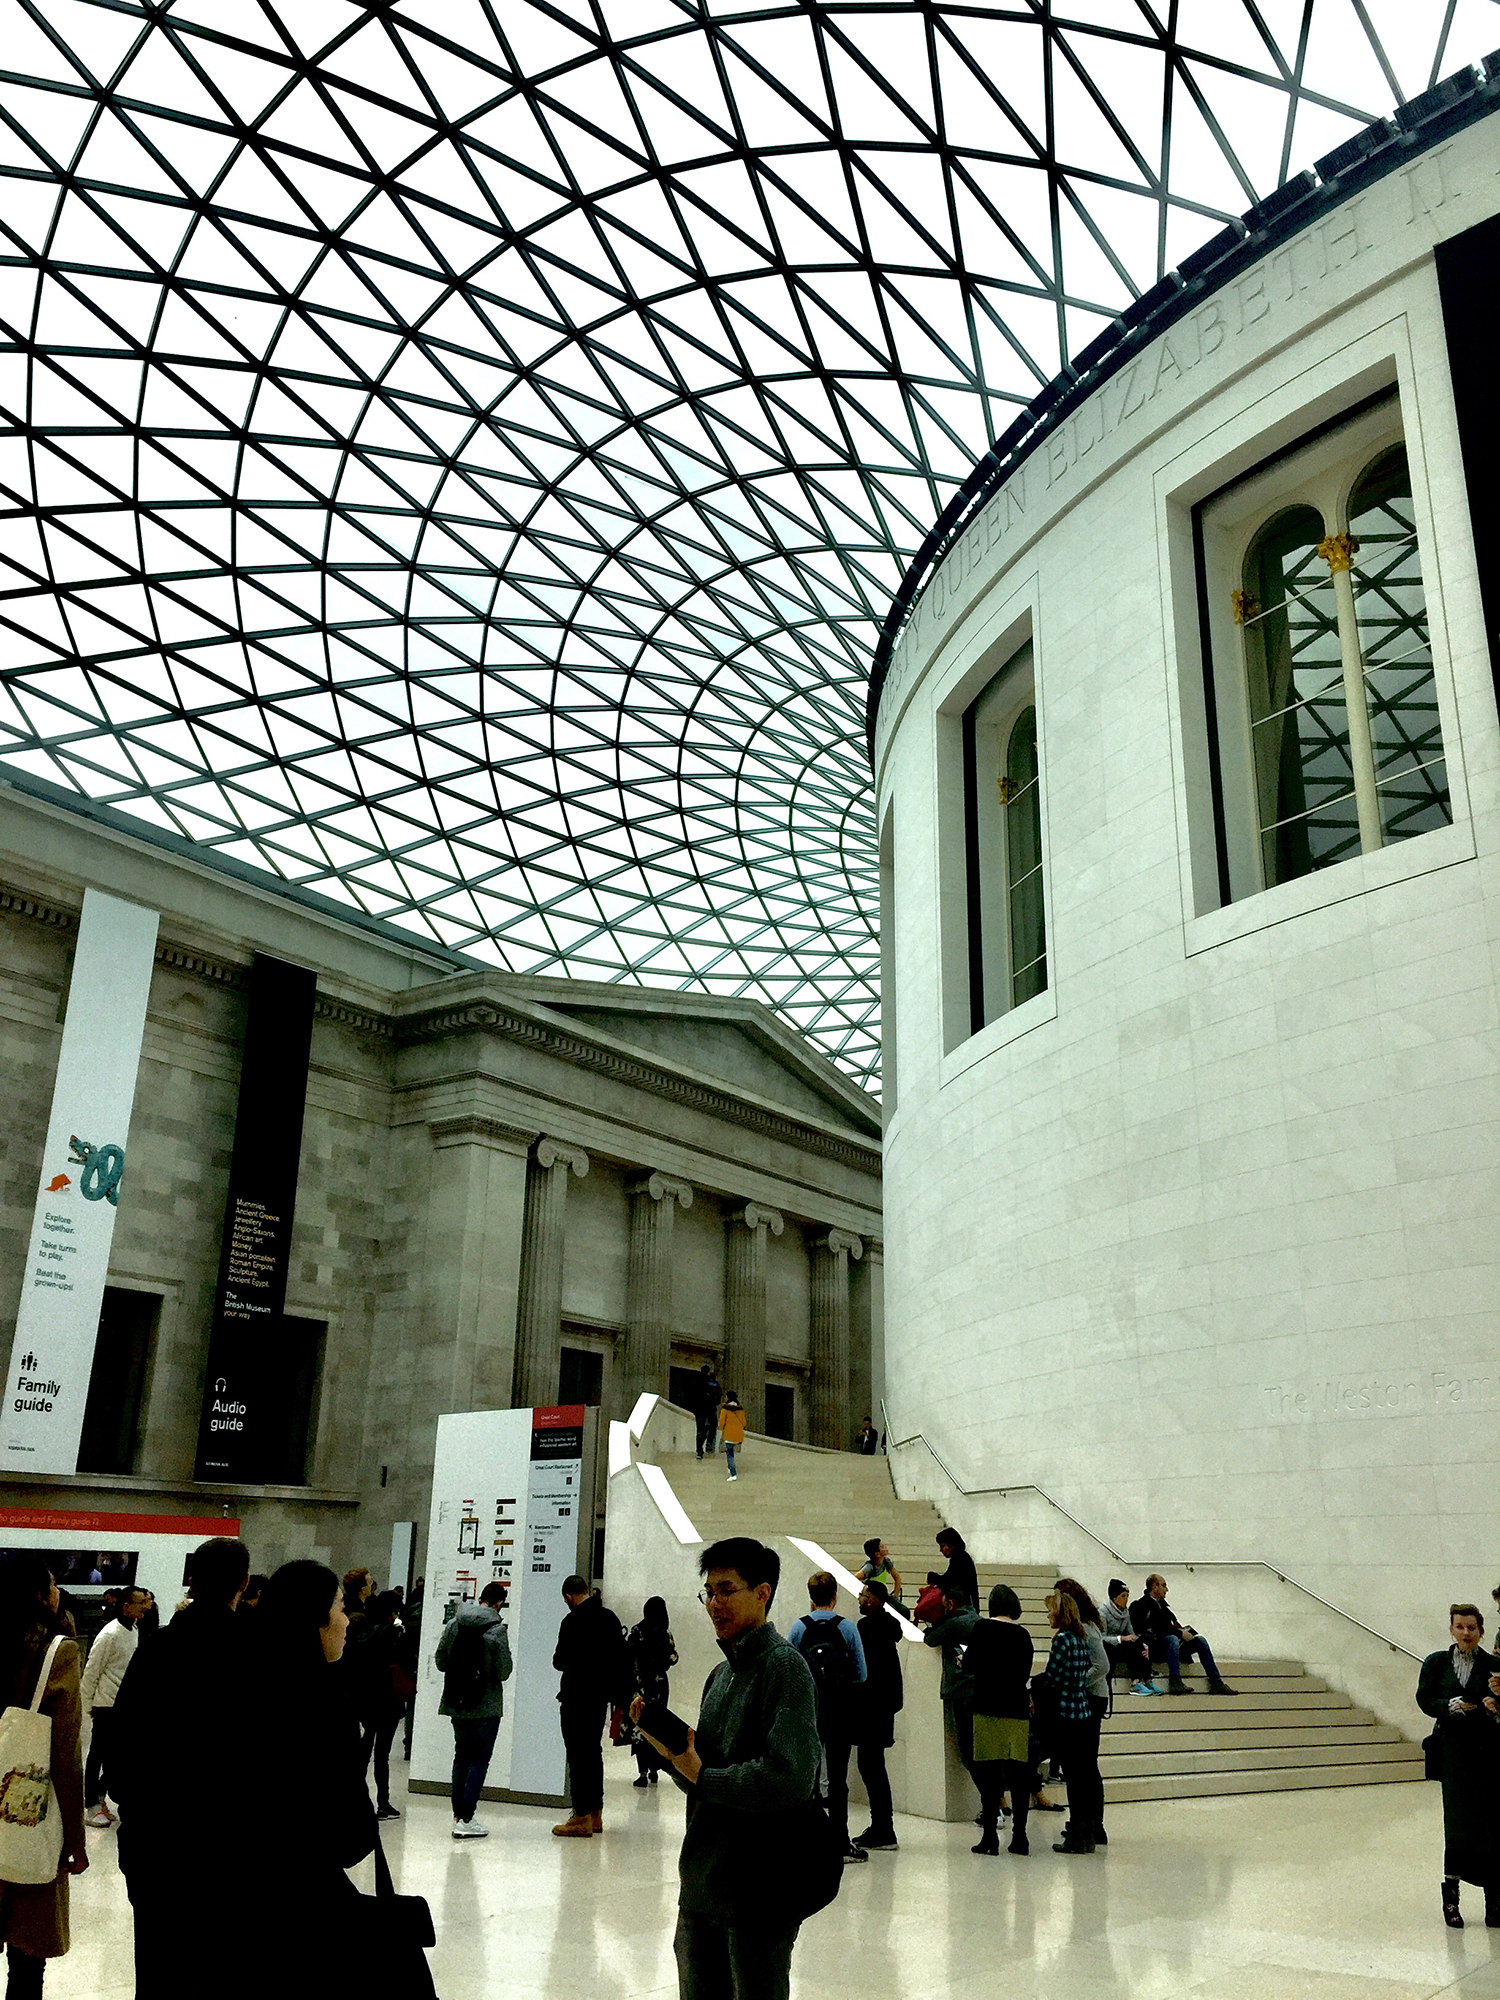 People are walking and standing in a space inside a museum. There is an intricately designed roof.